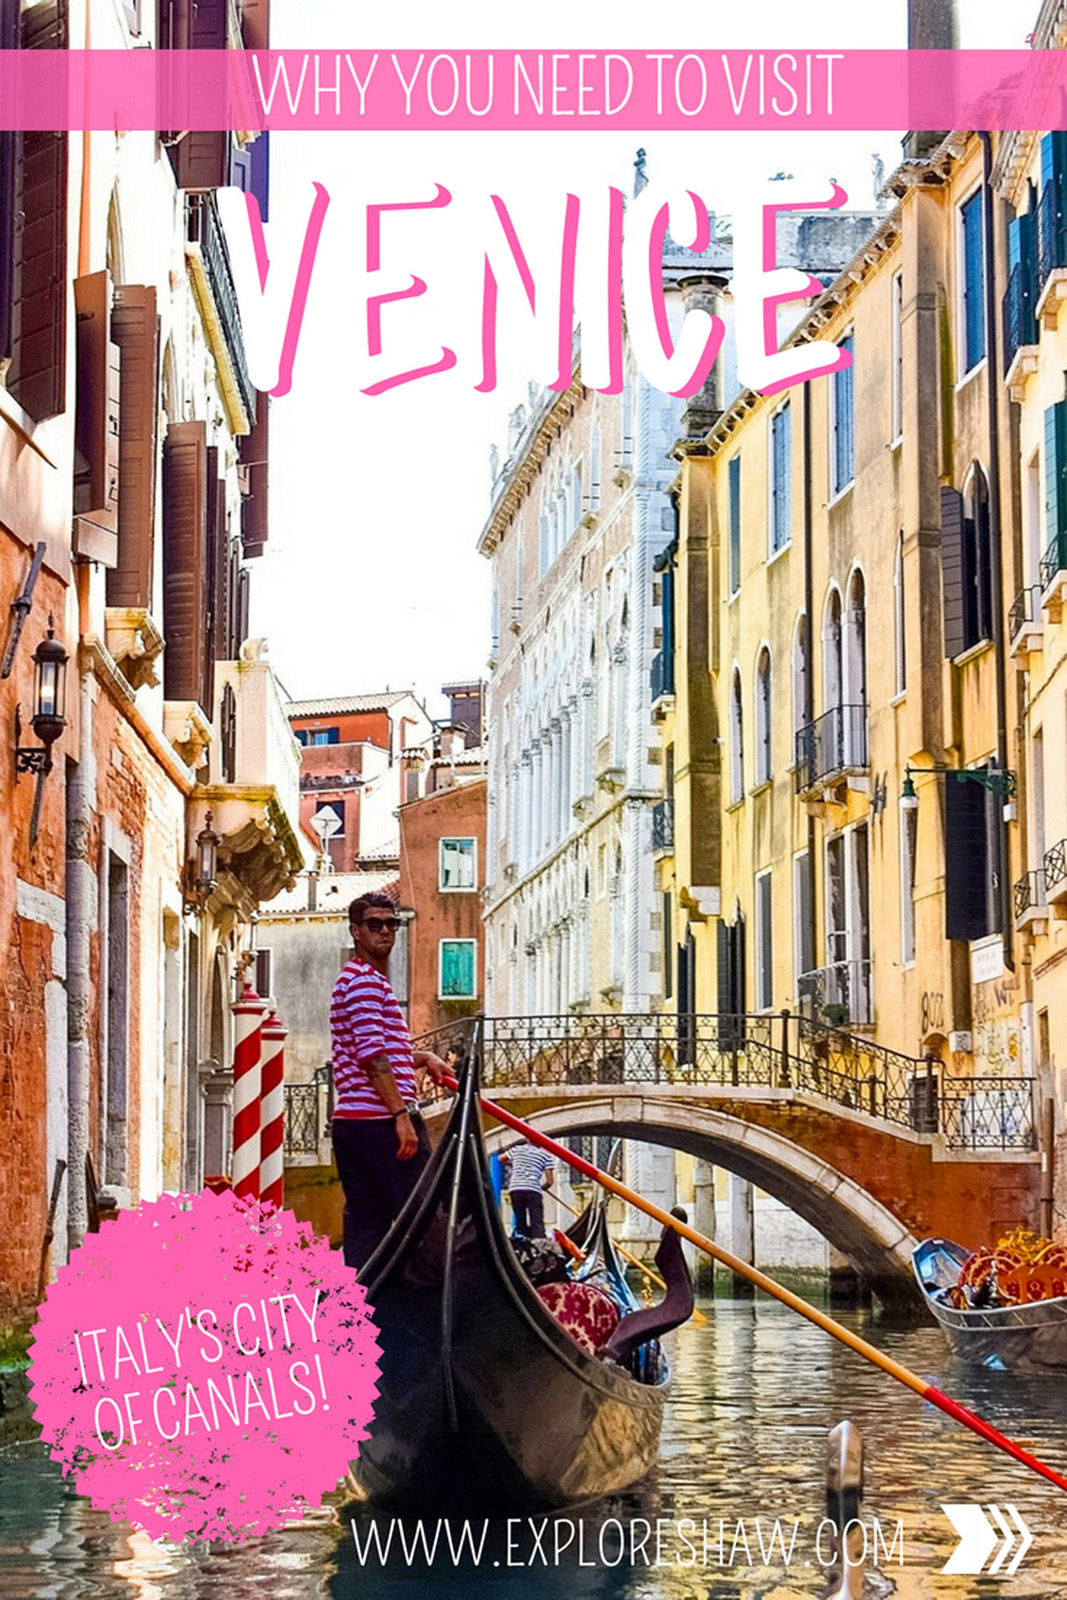 Venice, the city of love. It's a can't miss city in Italy, with so much to explore. Here's everything we love so much about the city on water. #Italy #Venice